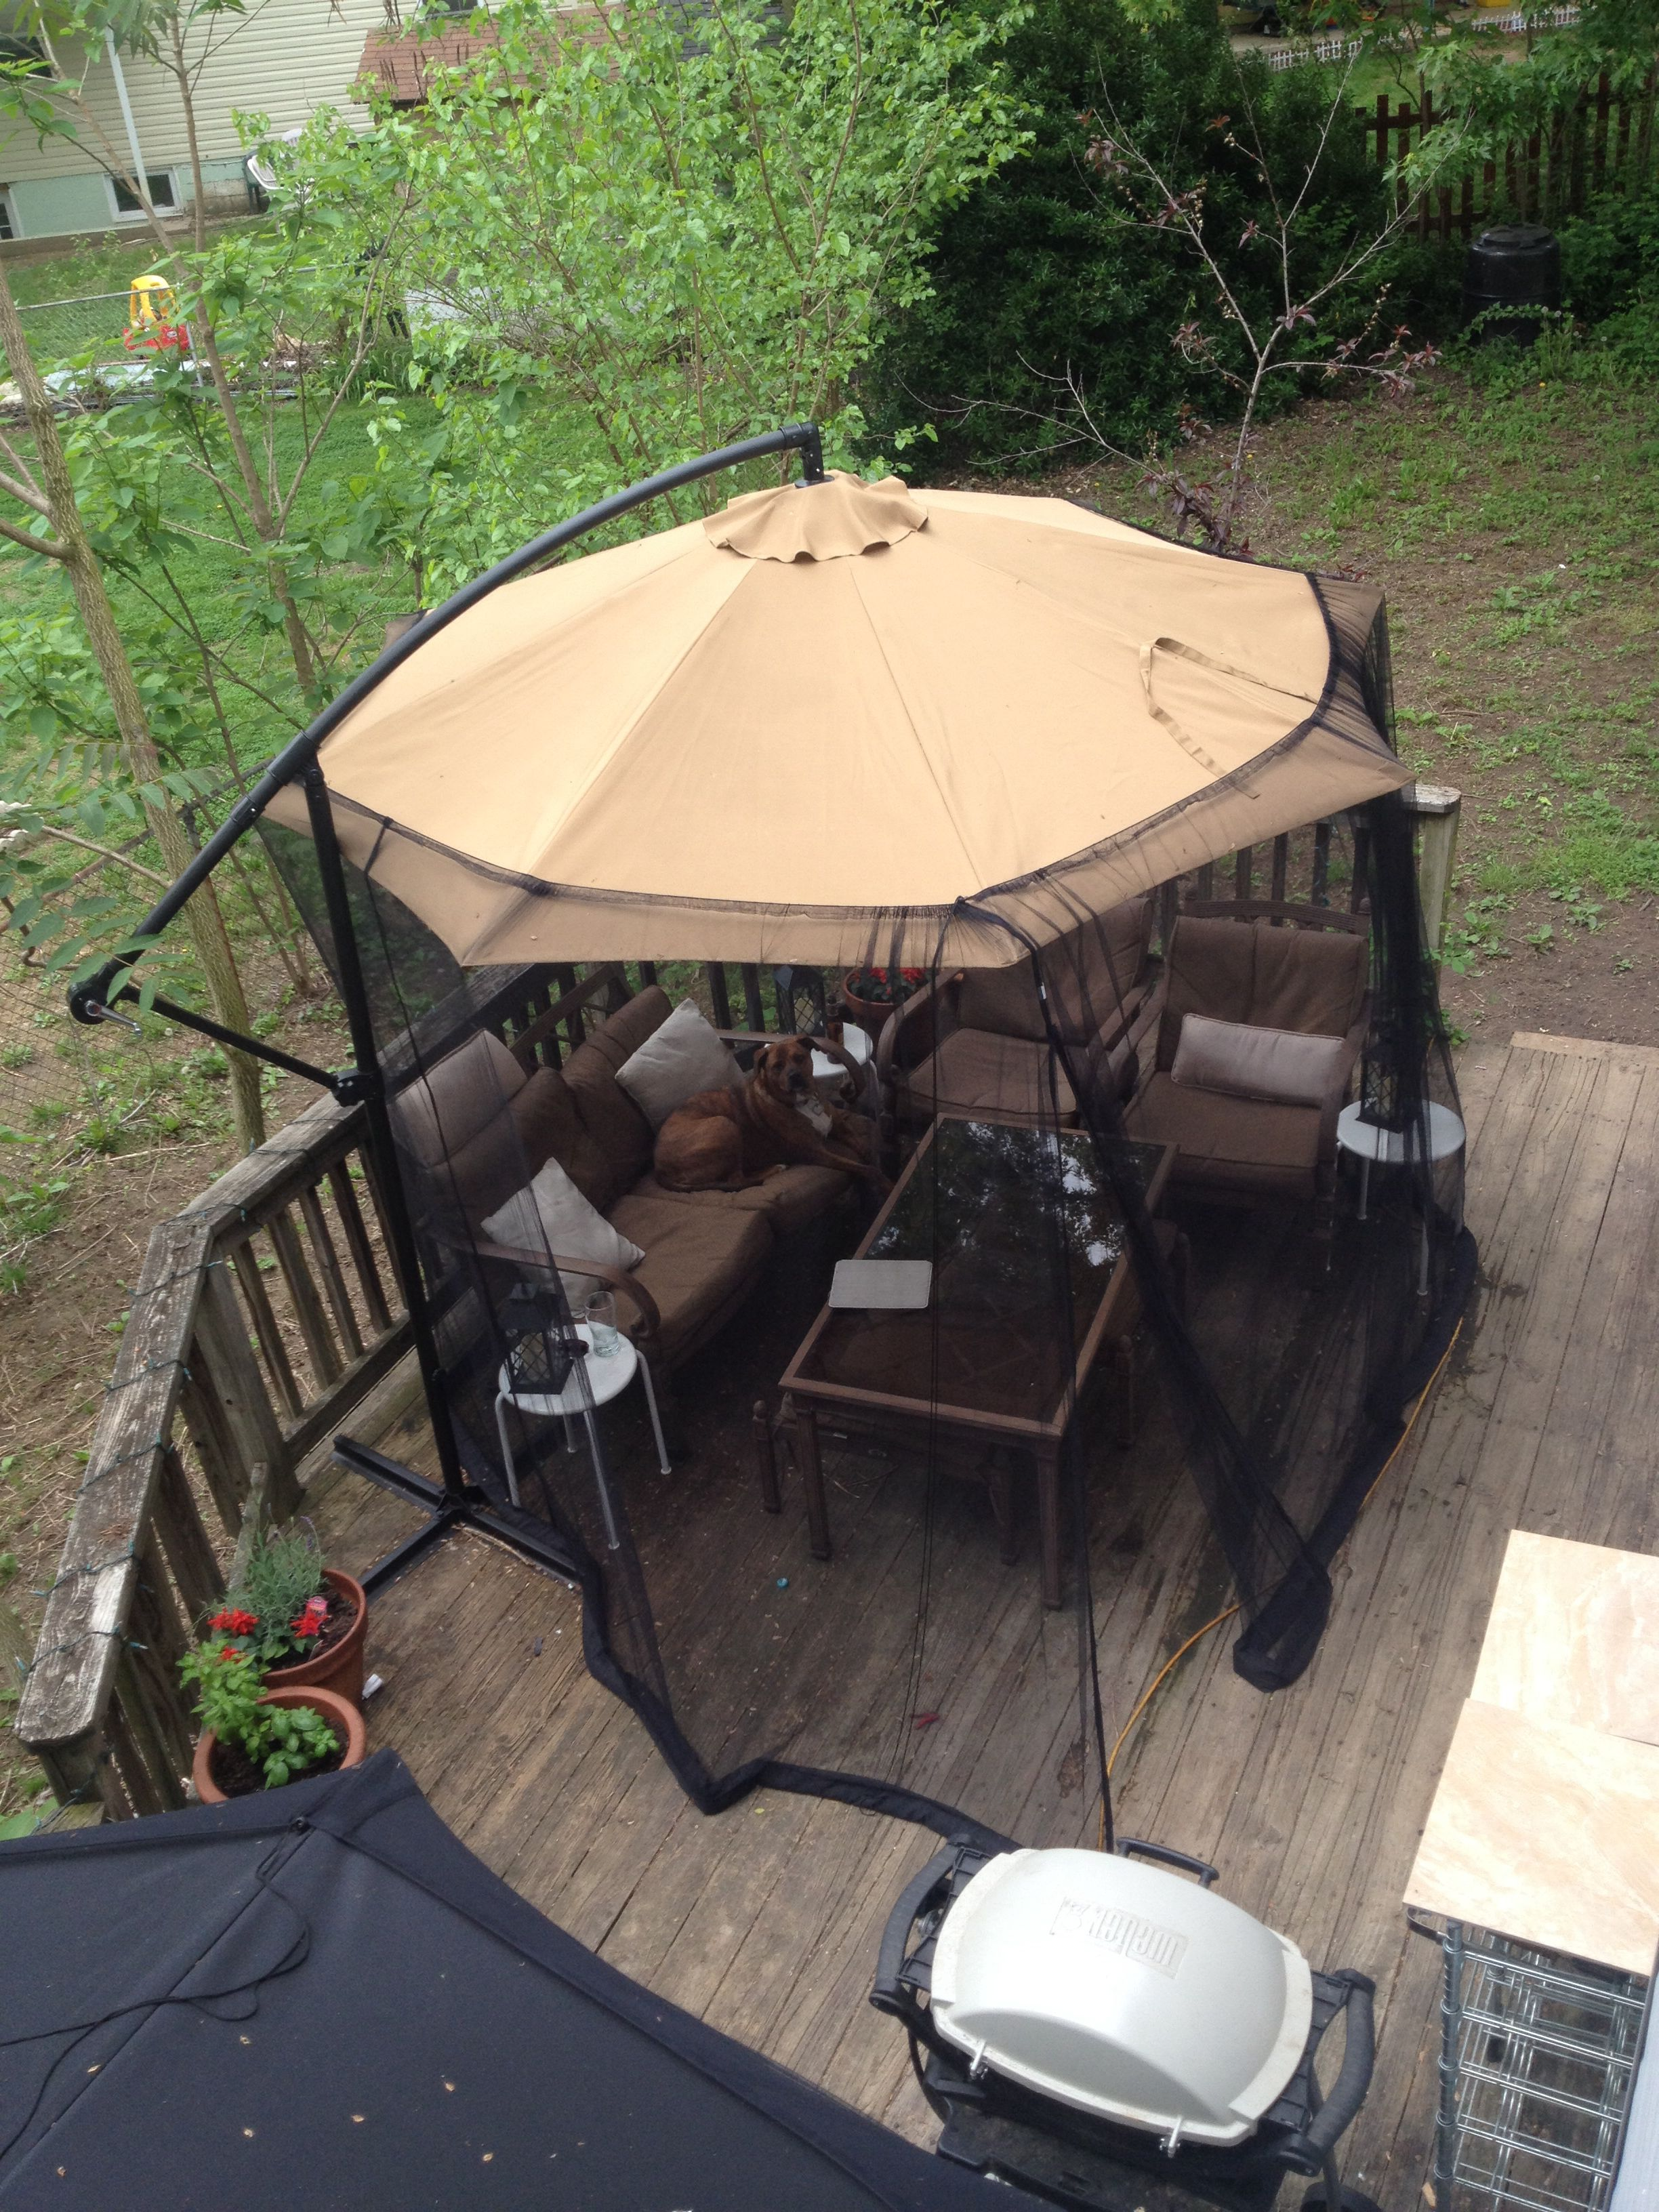 100 Screened Gazebo Outdoor Bug Free Living Room On My Deck 10 Ft Offset Umbrella From Aldi Yep And 40 Mosquito Net Gazebo Hot Tub Garden Modern Gazebo